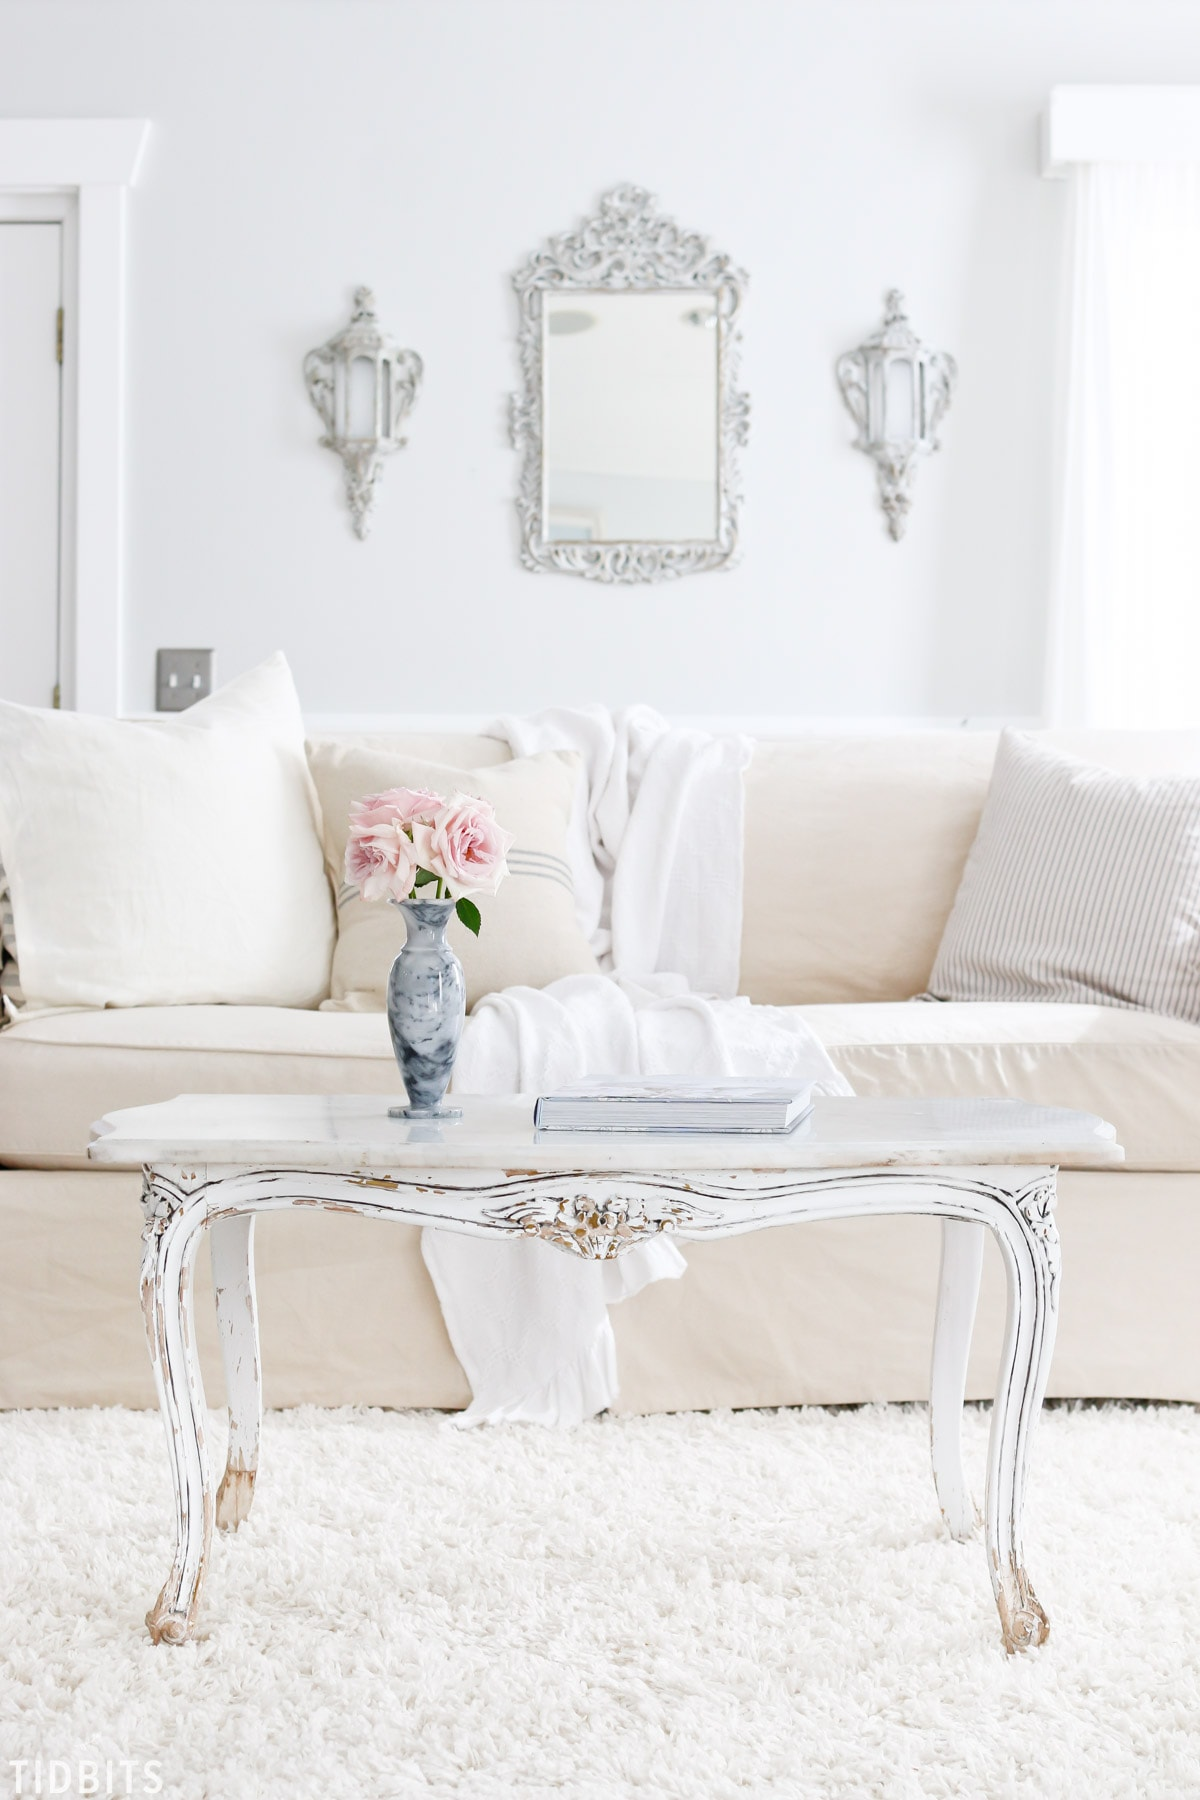 Tips And Tricks For Cleaning Slipcovers Naturally. 4 Kids + White Sofa .